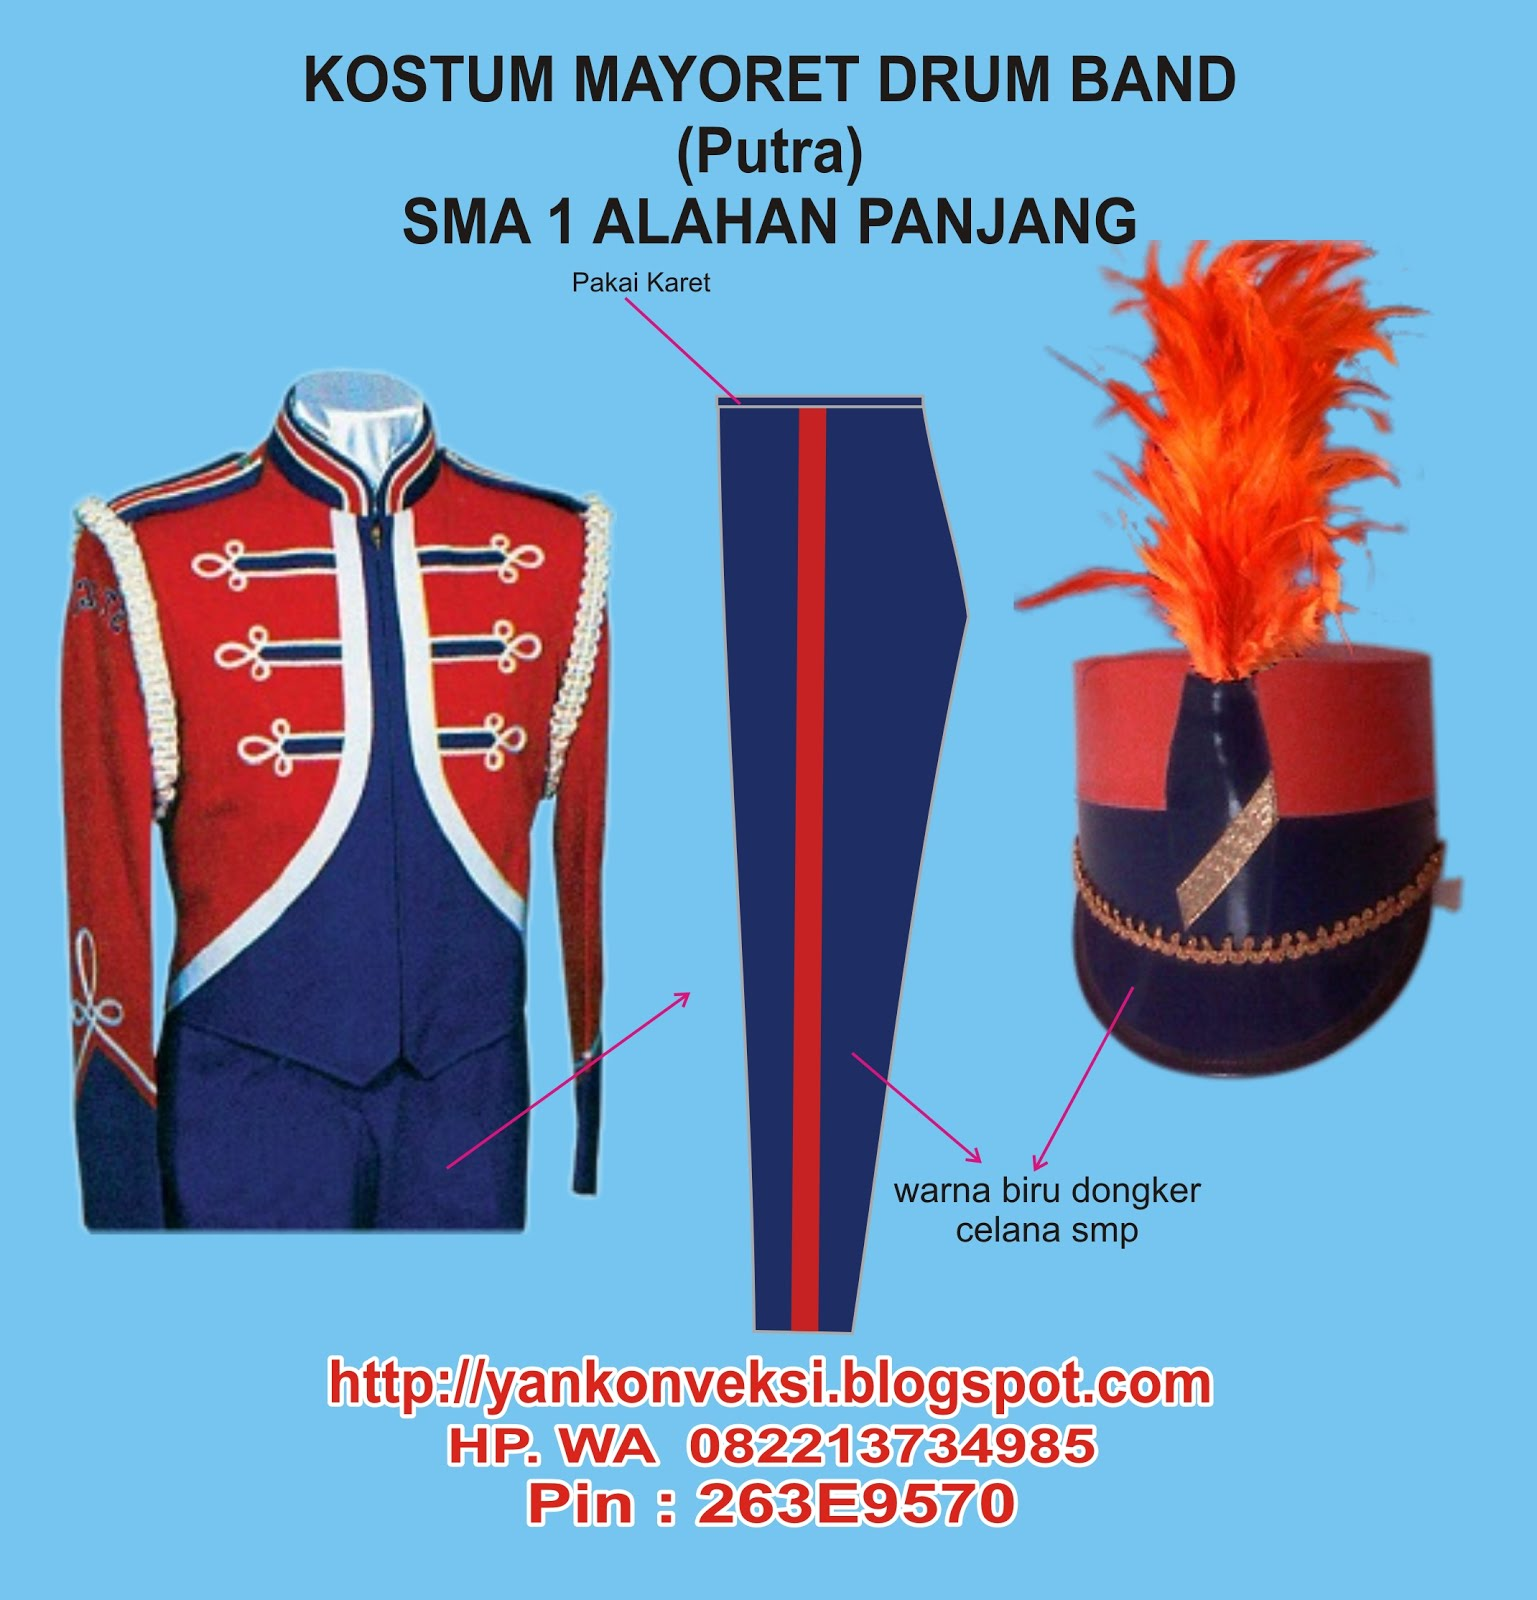 KOSTUM MAYORET PUTRA DRUM BAND DAN MARCHING BAND